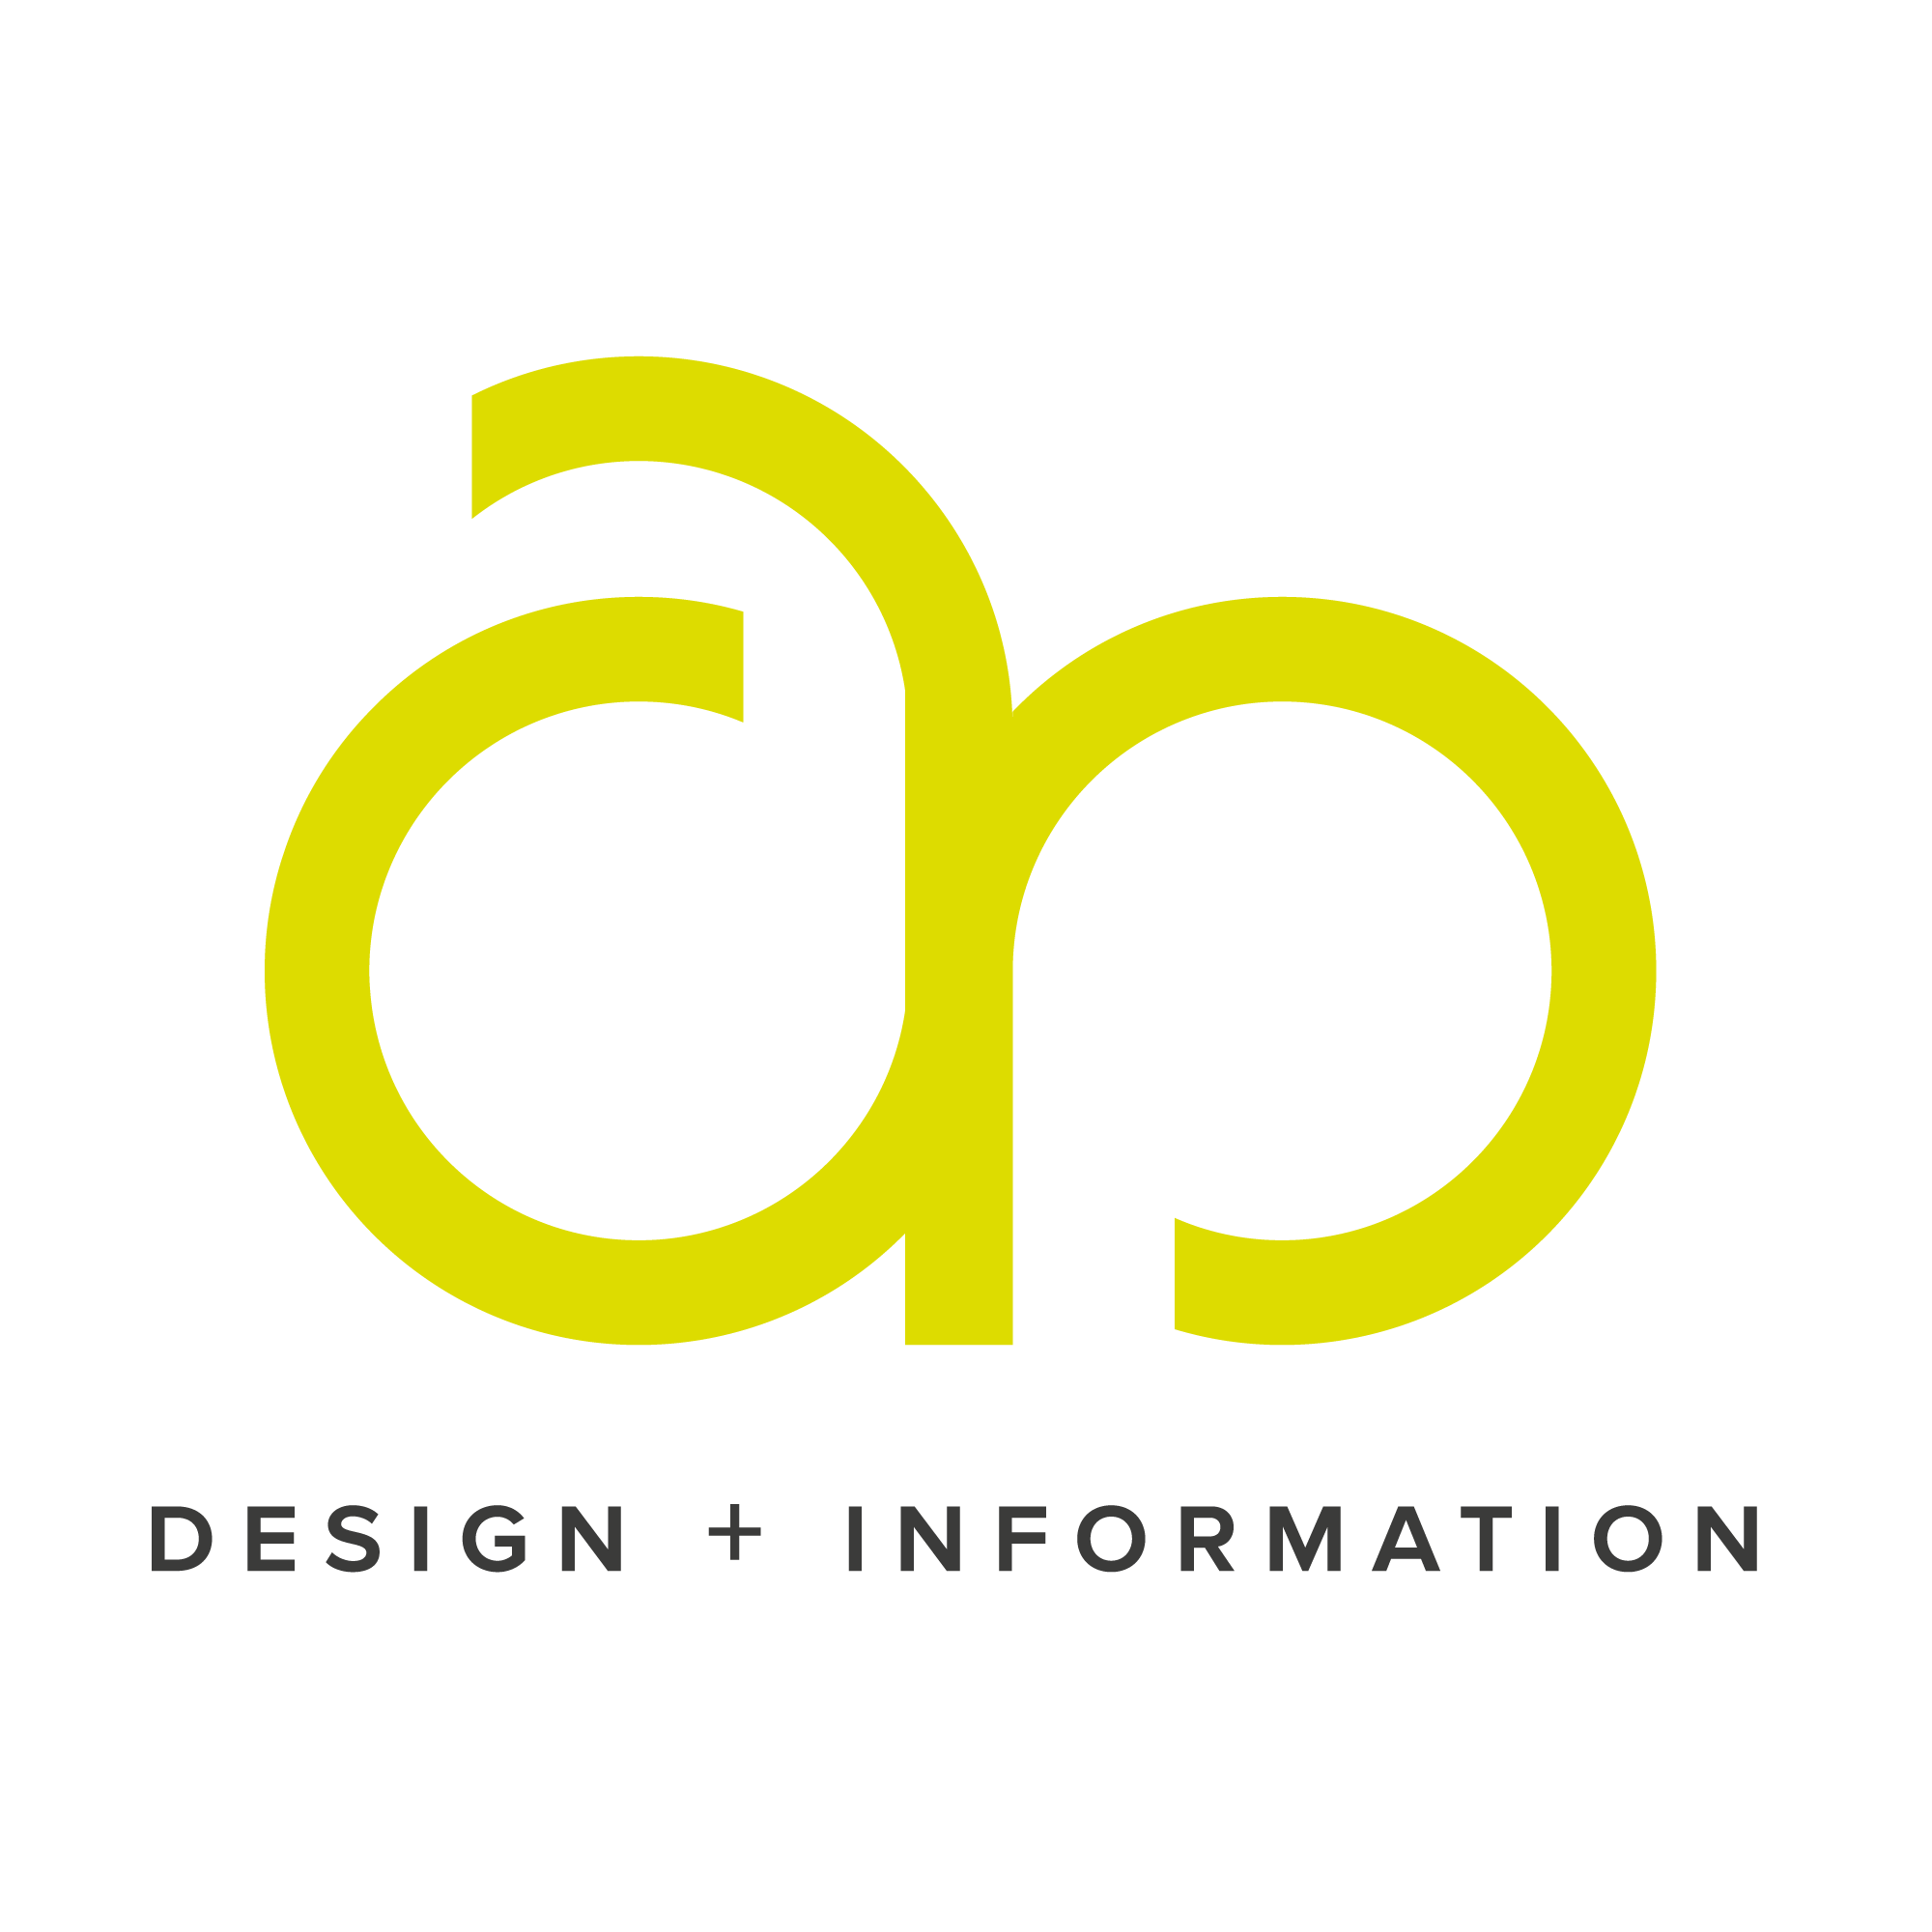 Be a part of my dream and help me design a distinguished brand identity